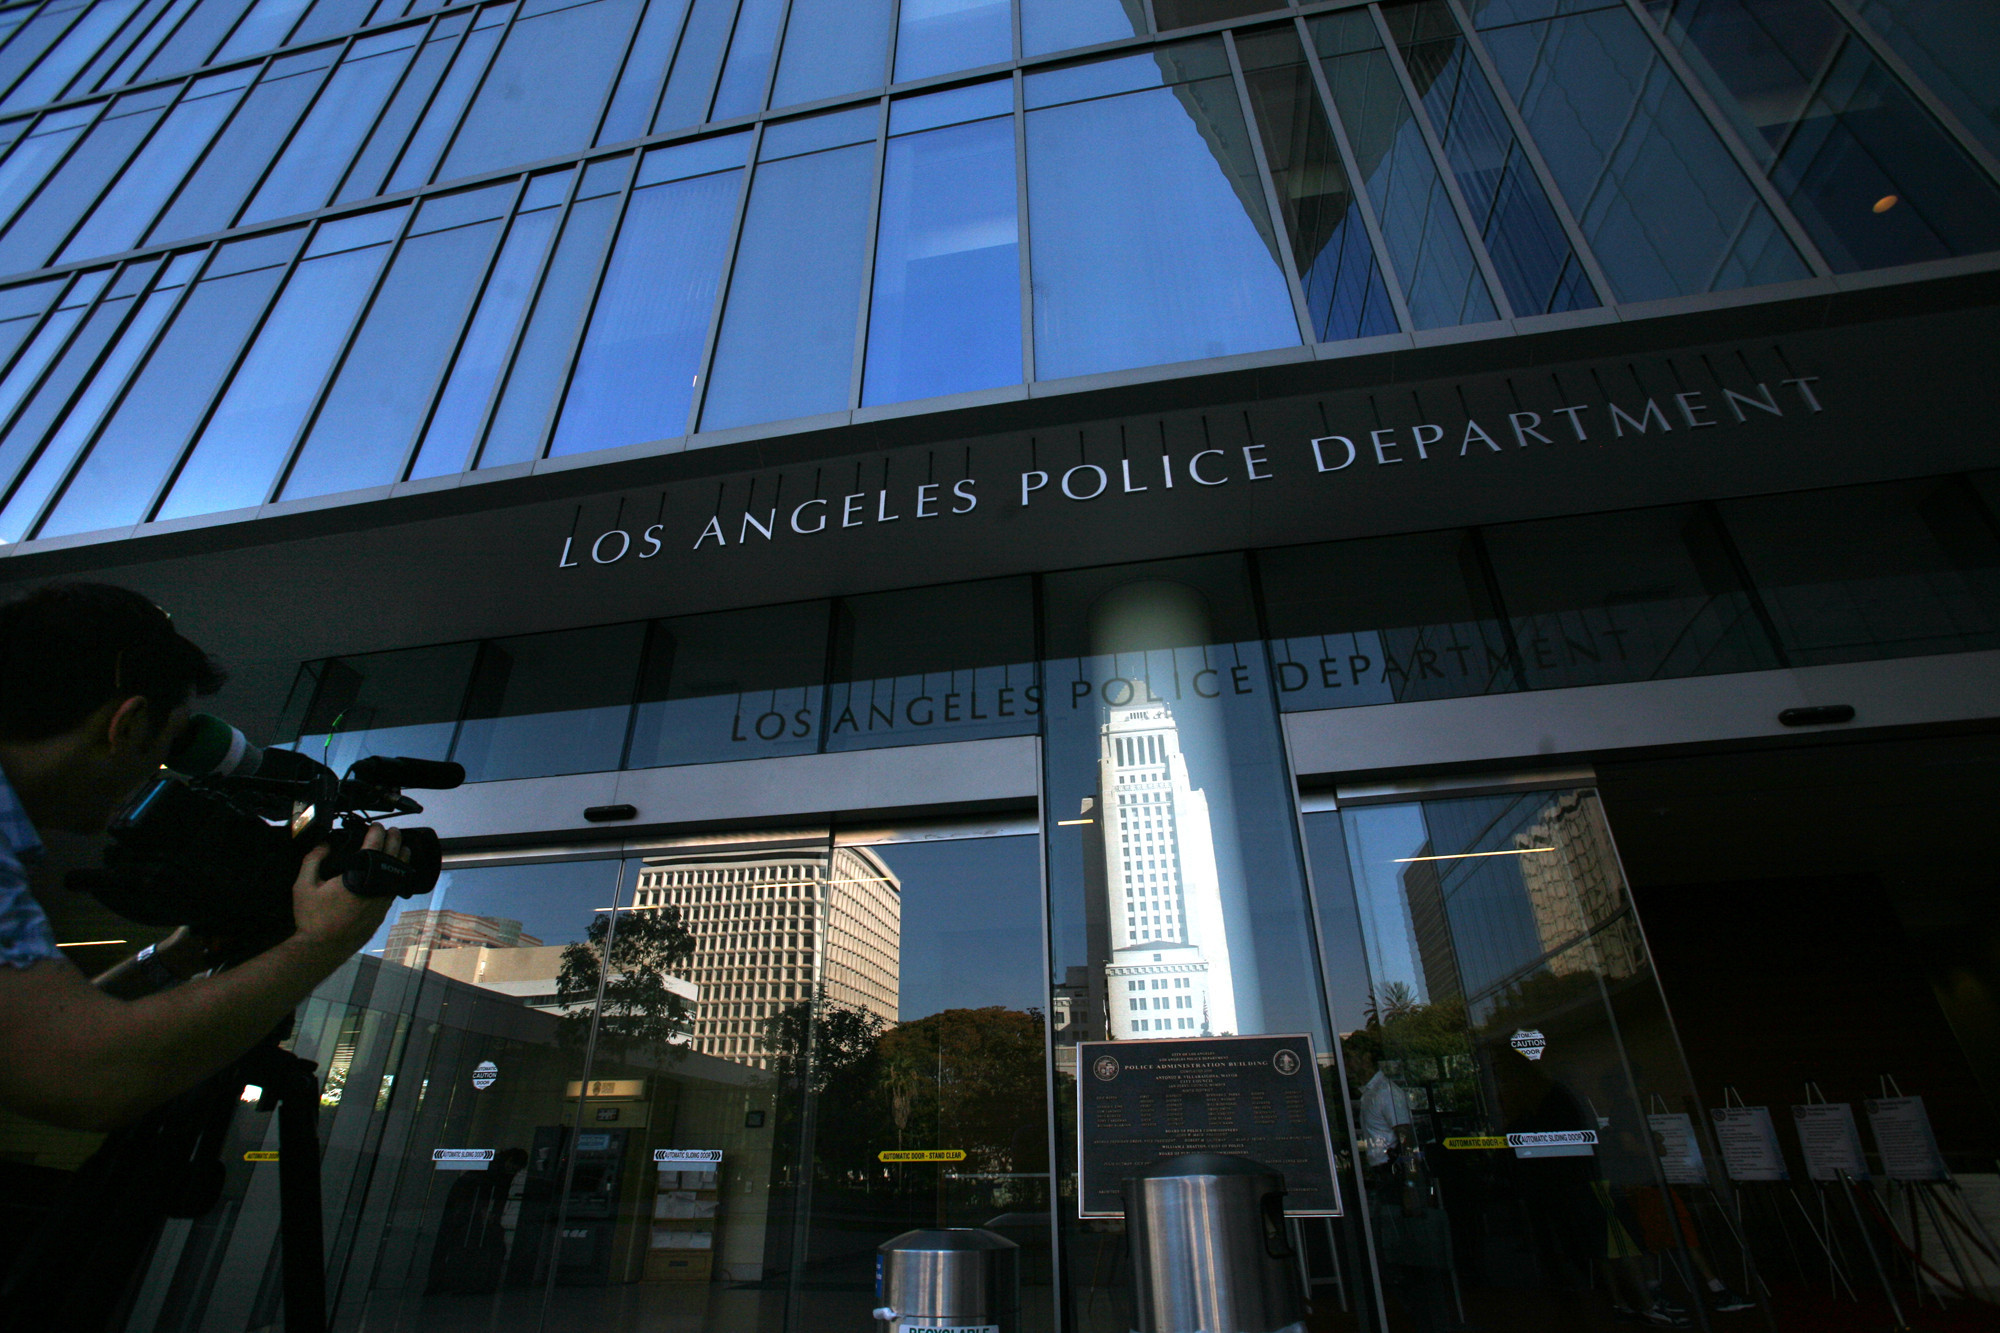 Physical requirements for LAPD officers?